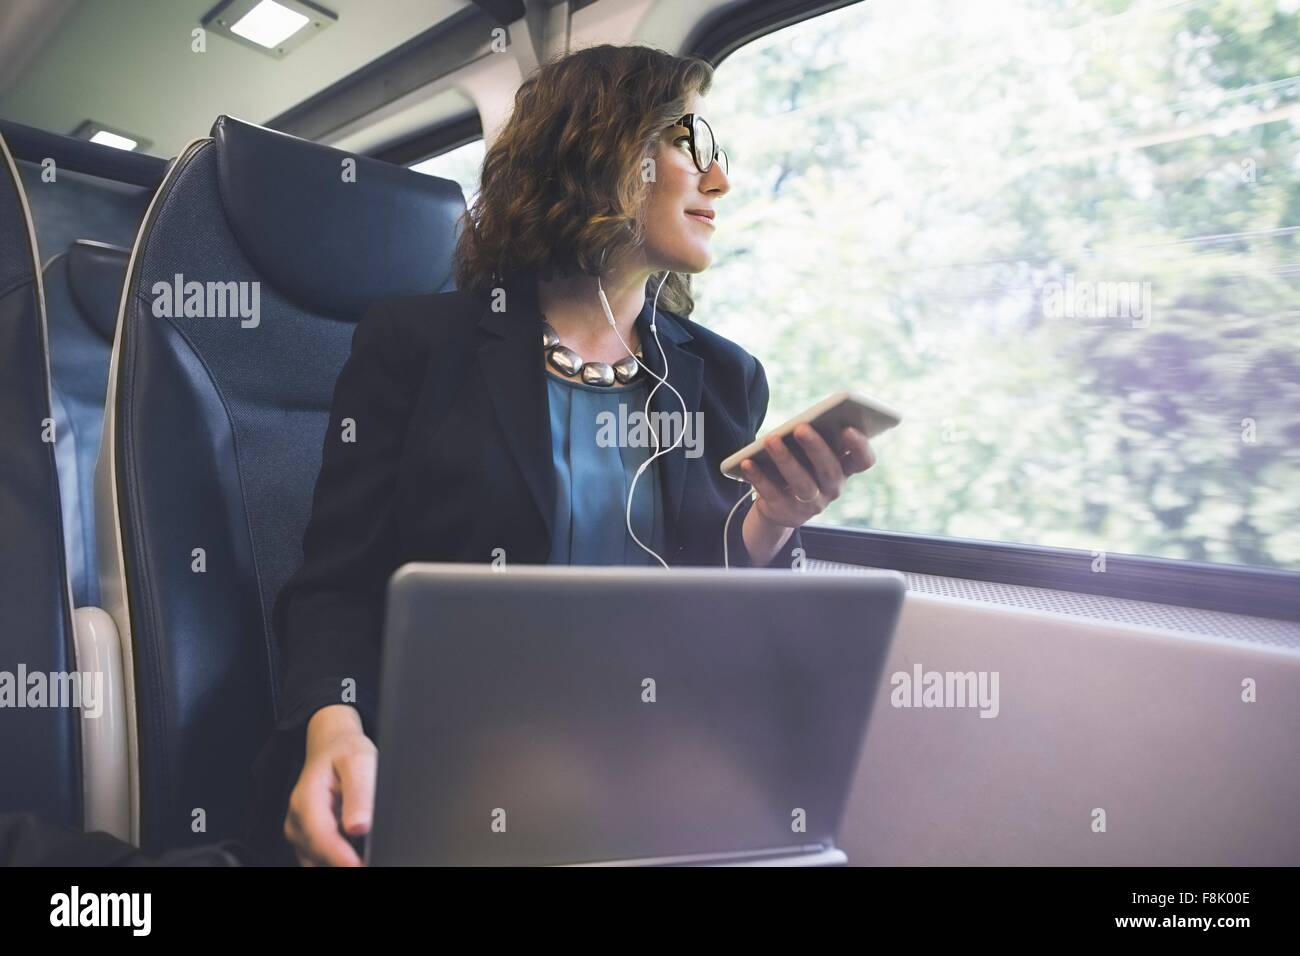 Mid adult woman on train, holding smartphone, laptop in front of her - Stock Image